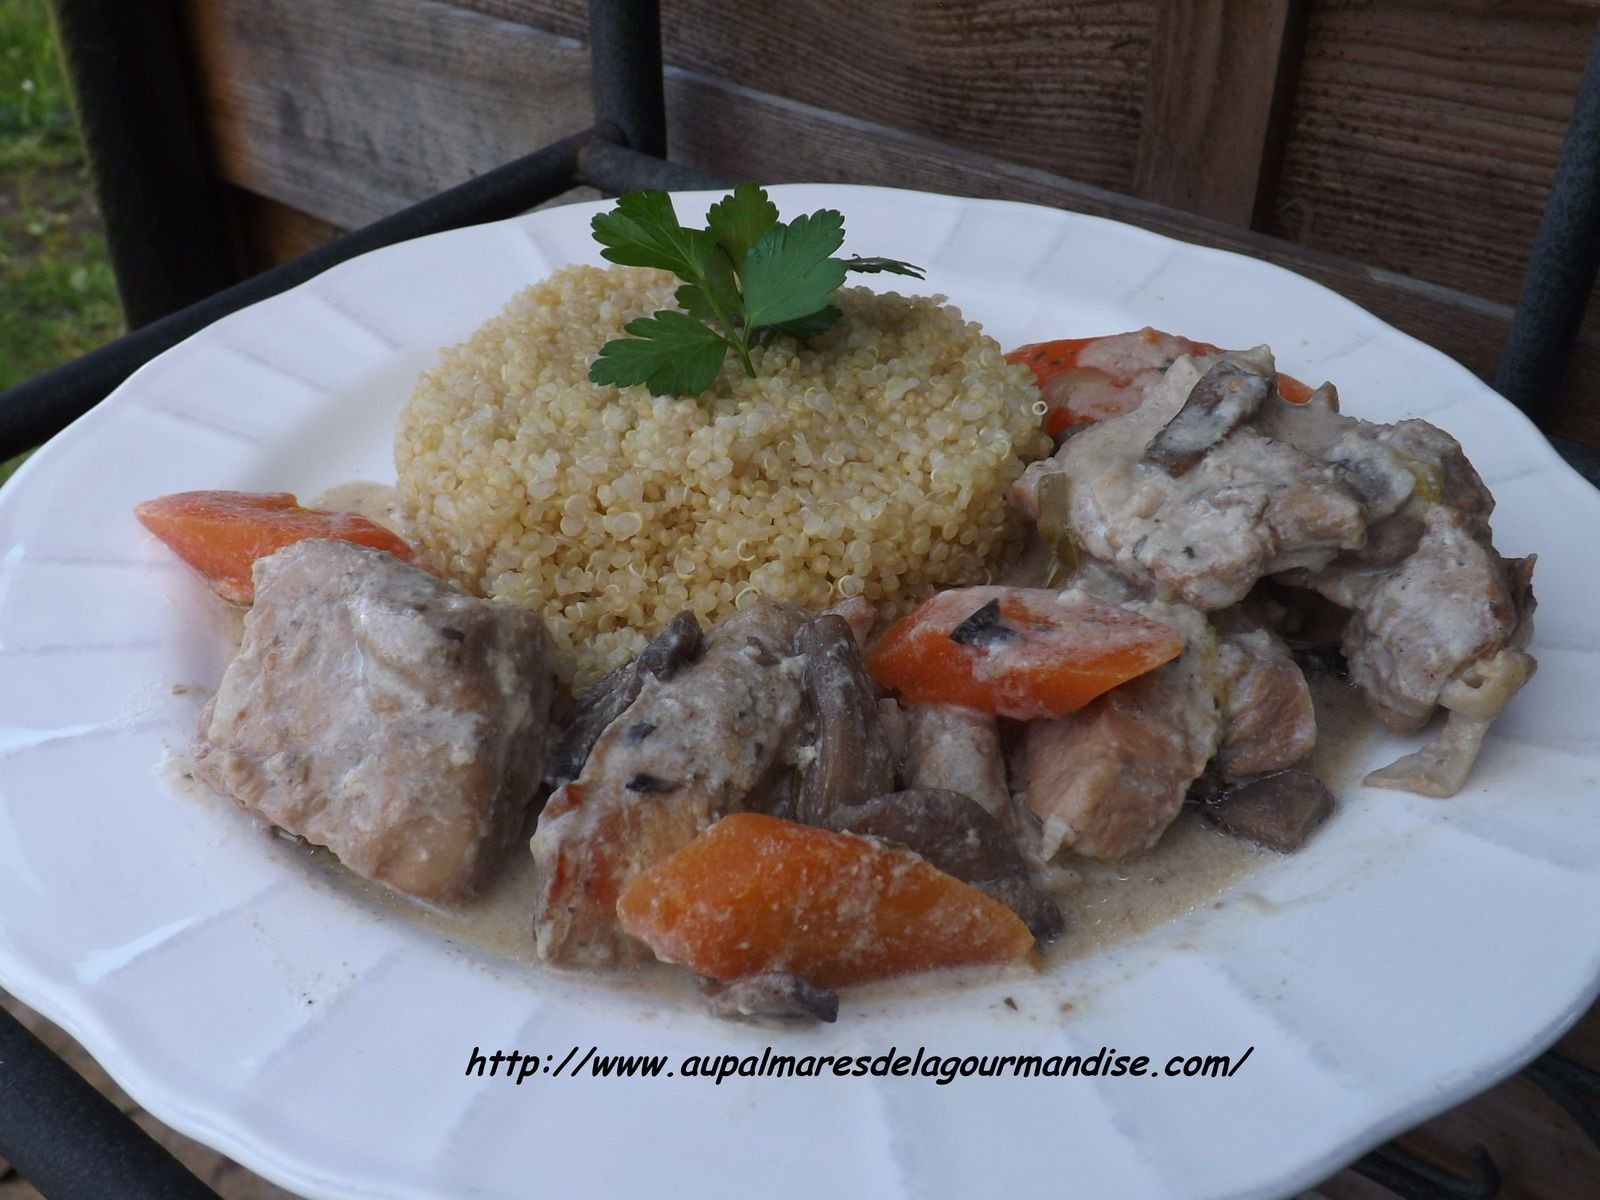 Blanquette de veau cuite au four version Tupperware IG BAS